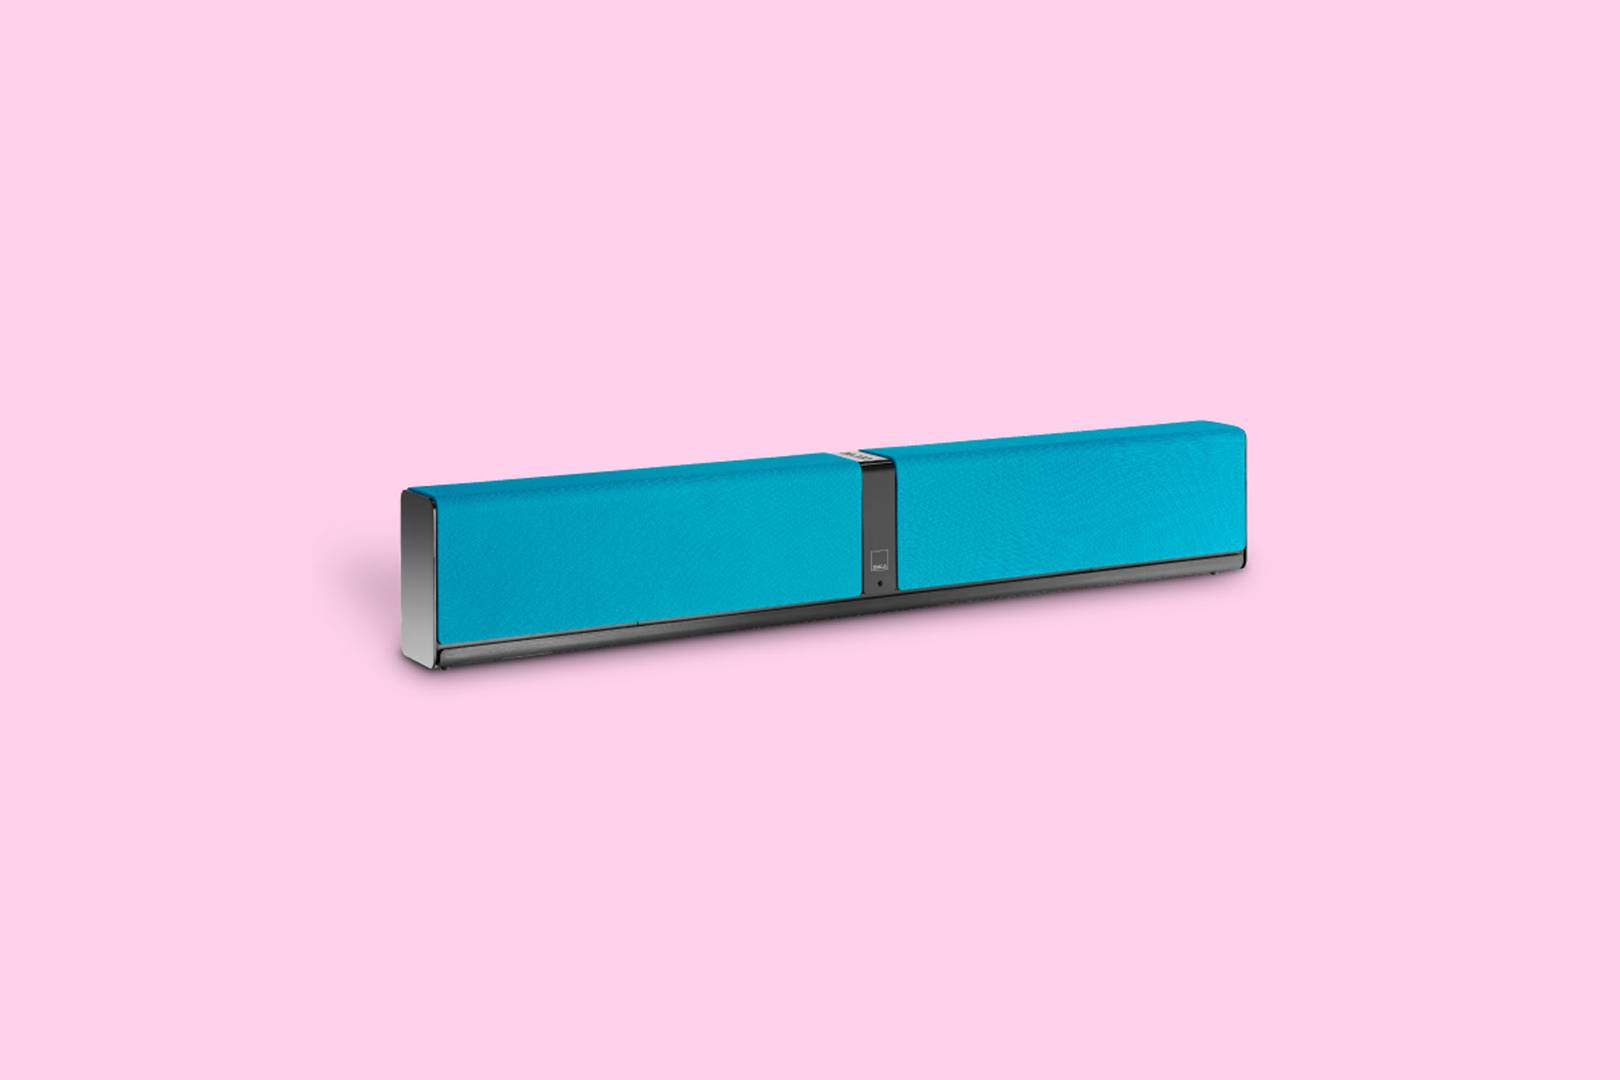 Best Soundbar 2019: The best soundbars for any budget | WIRED UK